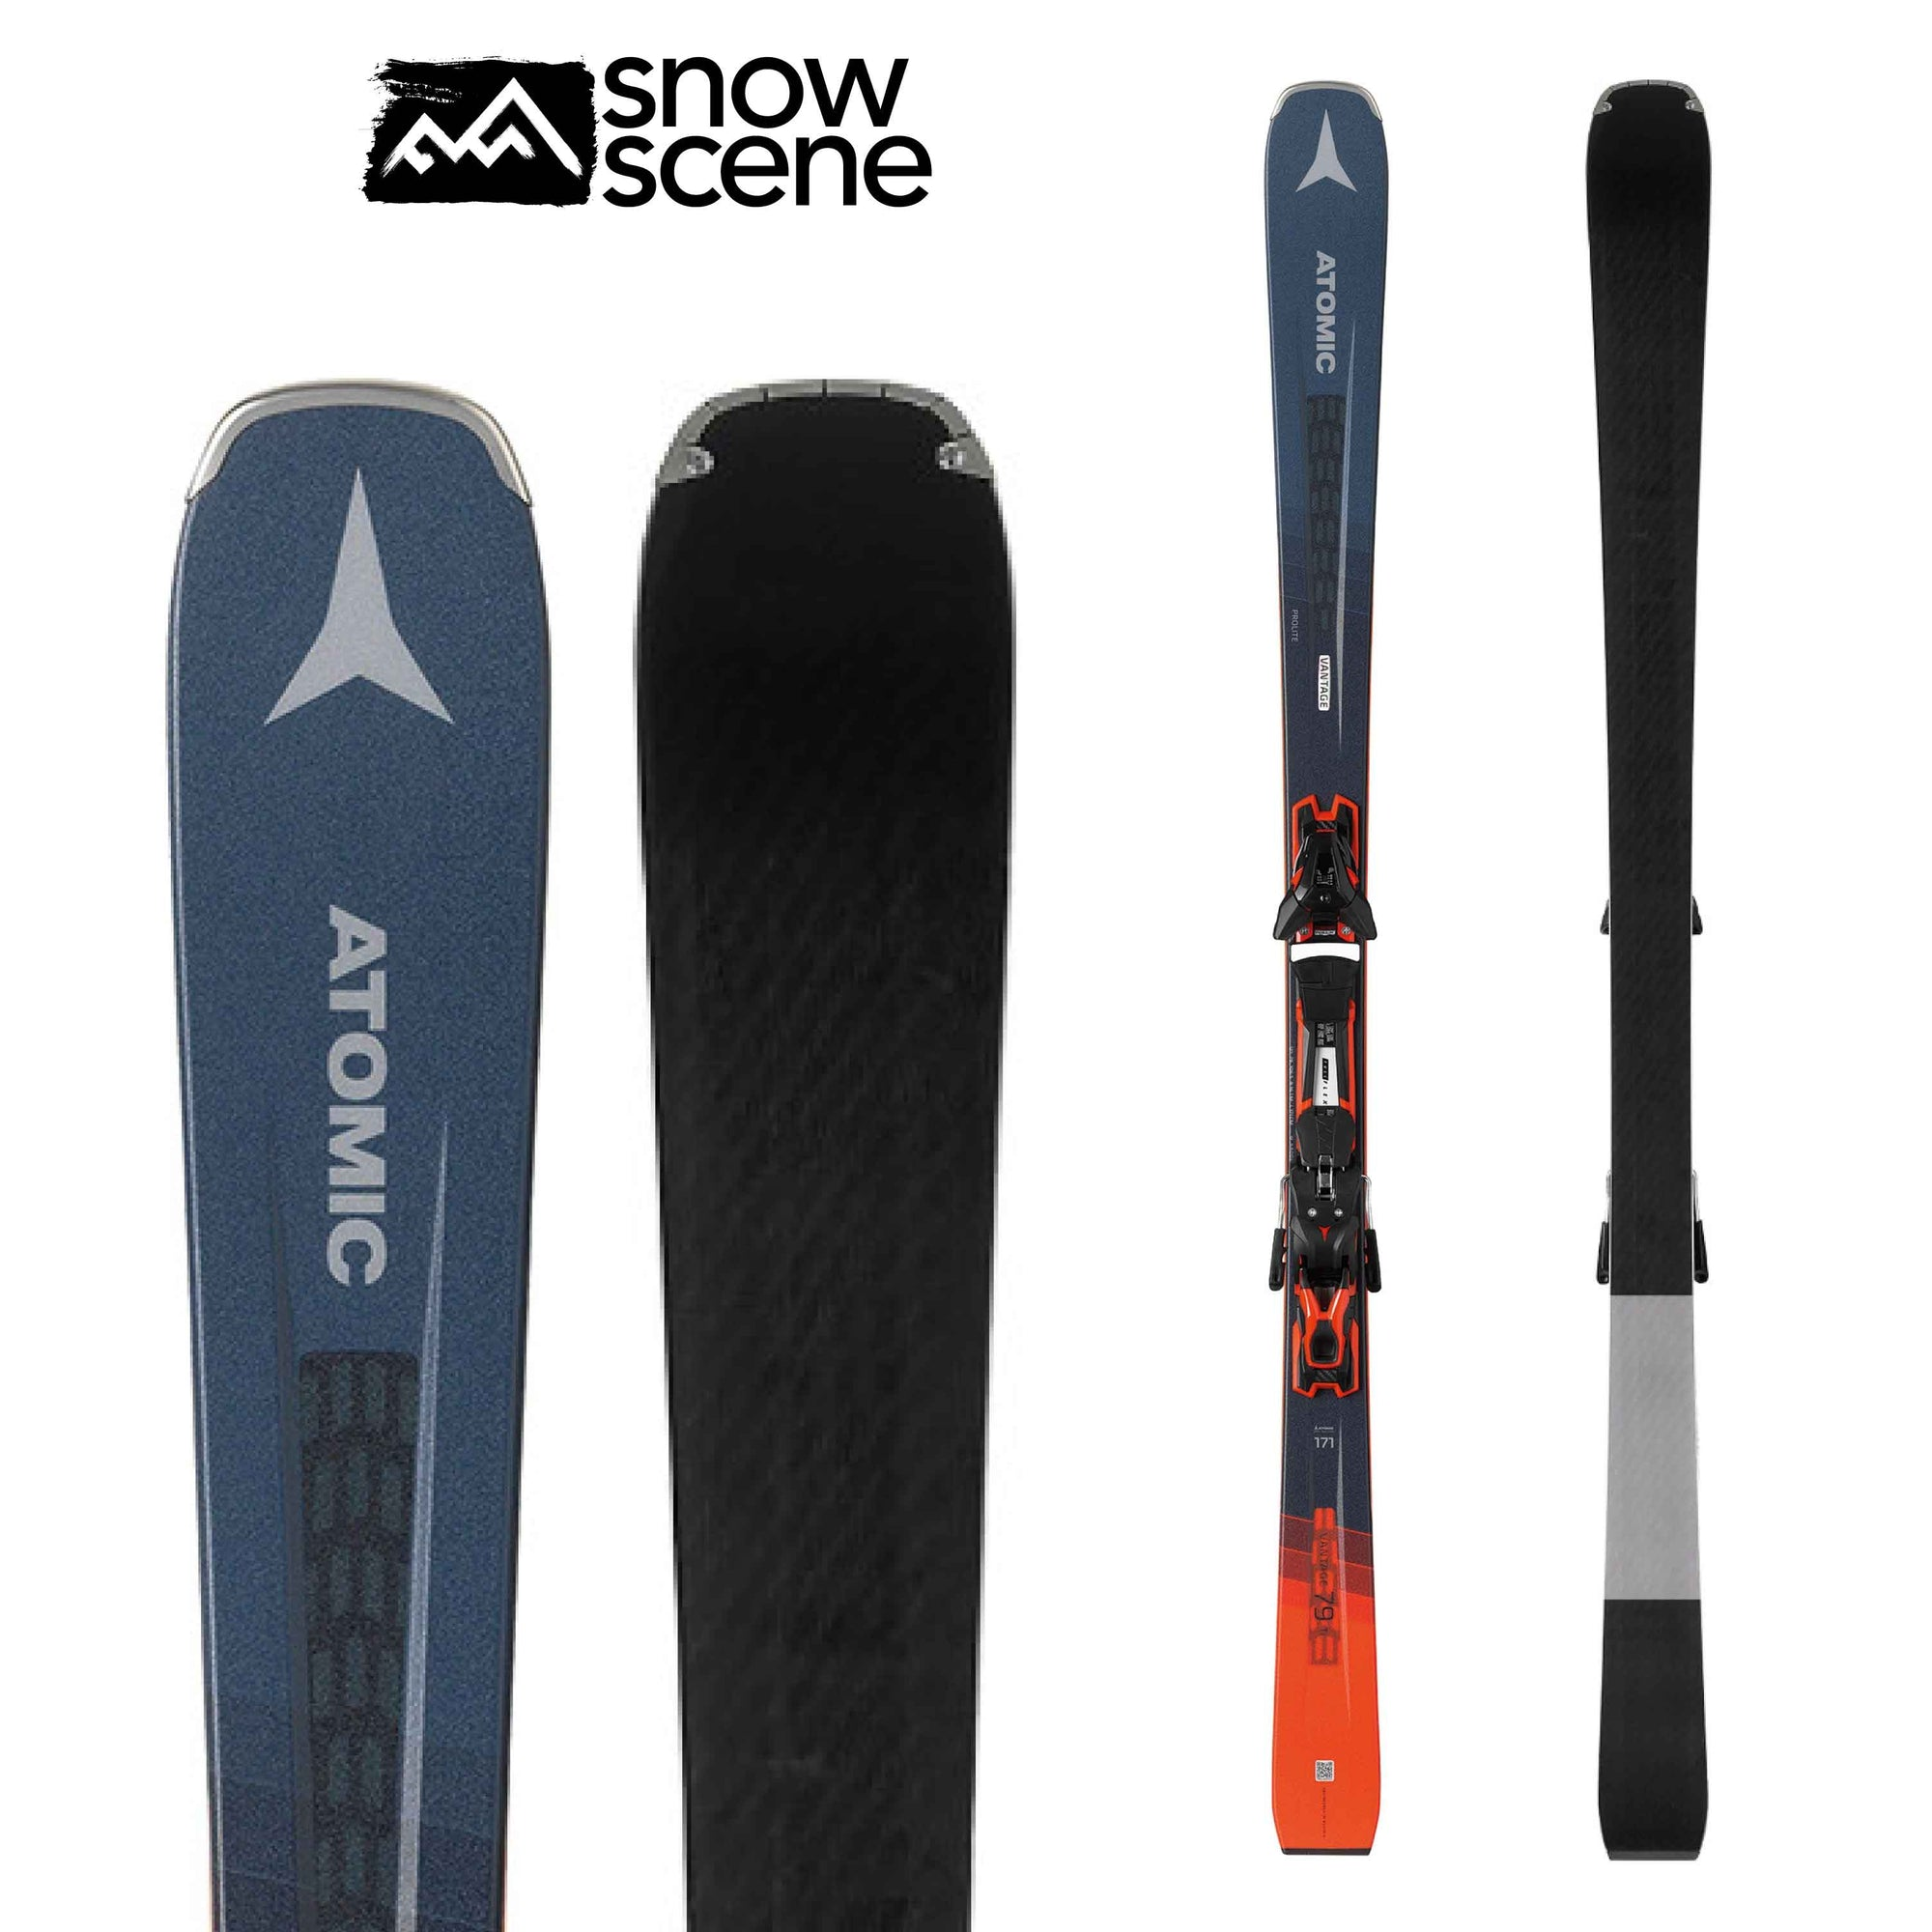 2020 Atomic Vantage 79 Ti FT- Shop Skis and snow gear online nz - snowscene